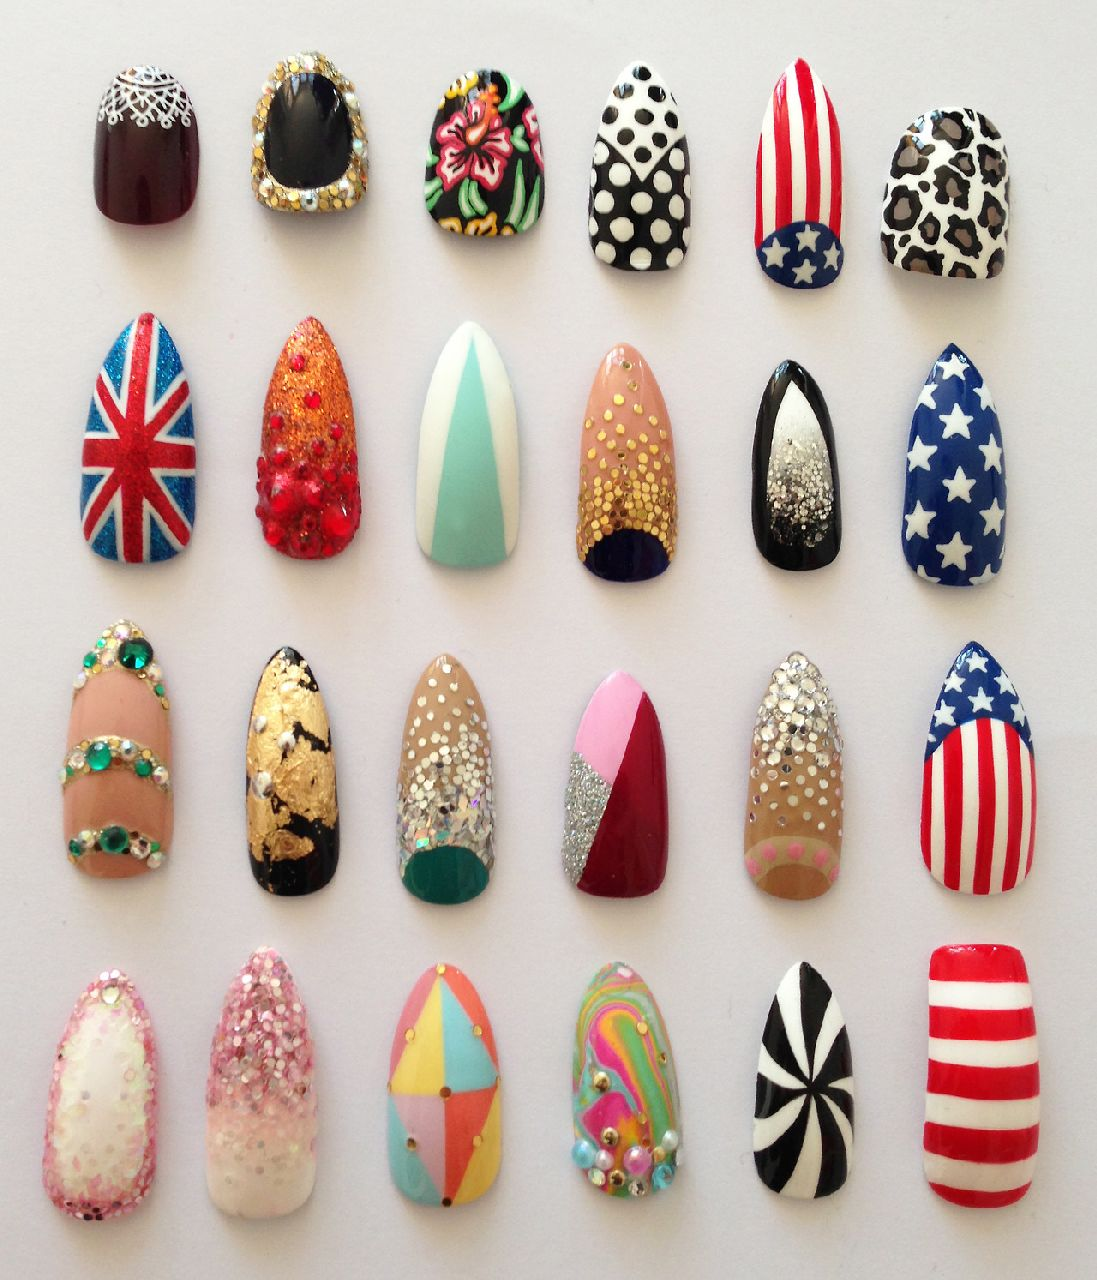 Nail Art Ideas: Nail Art Designs Latest Concepts 2014 For Girls